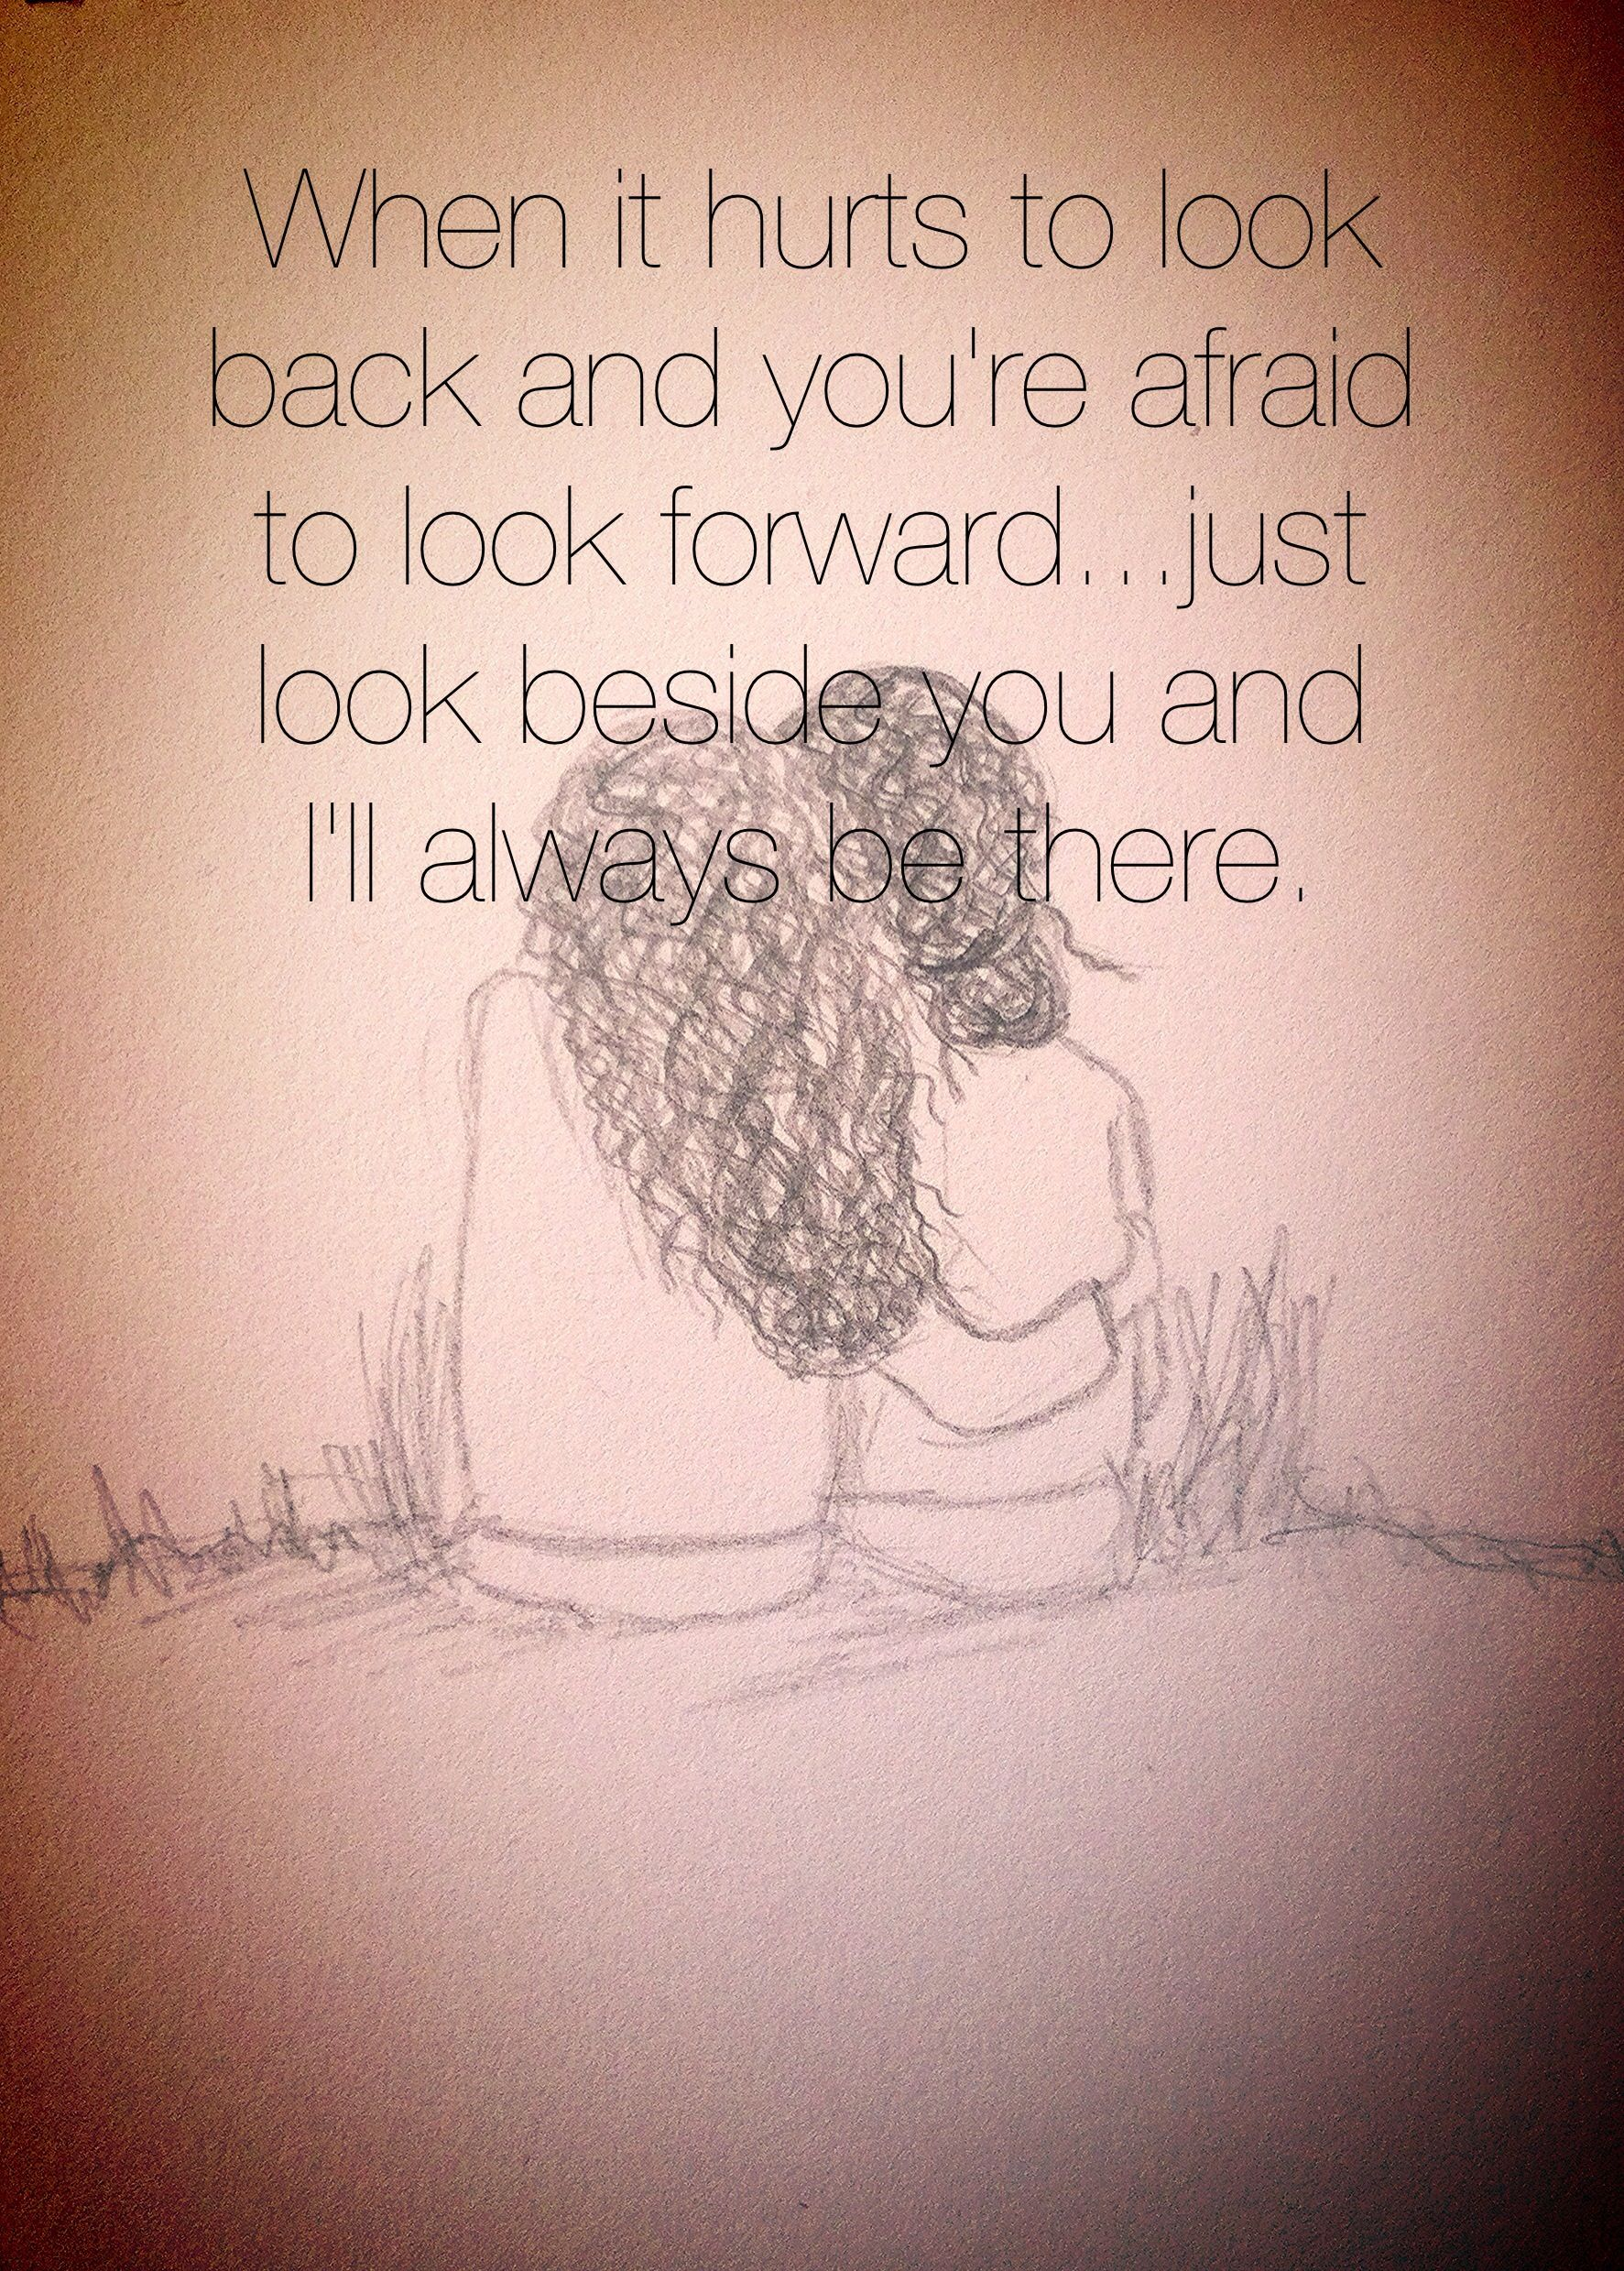 I Ll Always Be Here For You Quotes : always, quotes, Always, Friend, Quotes,, Friends, Quotes, Meaningful